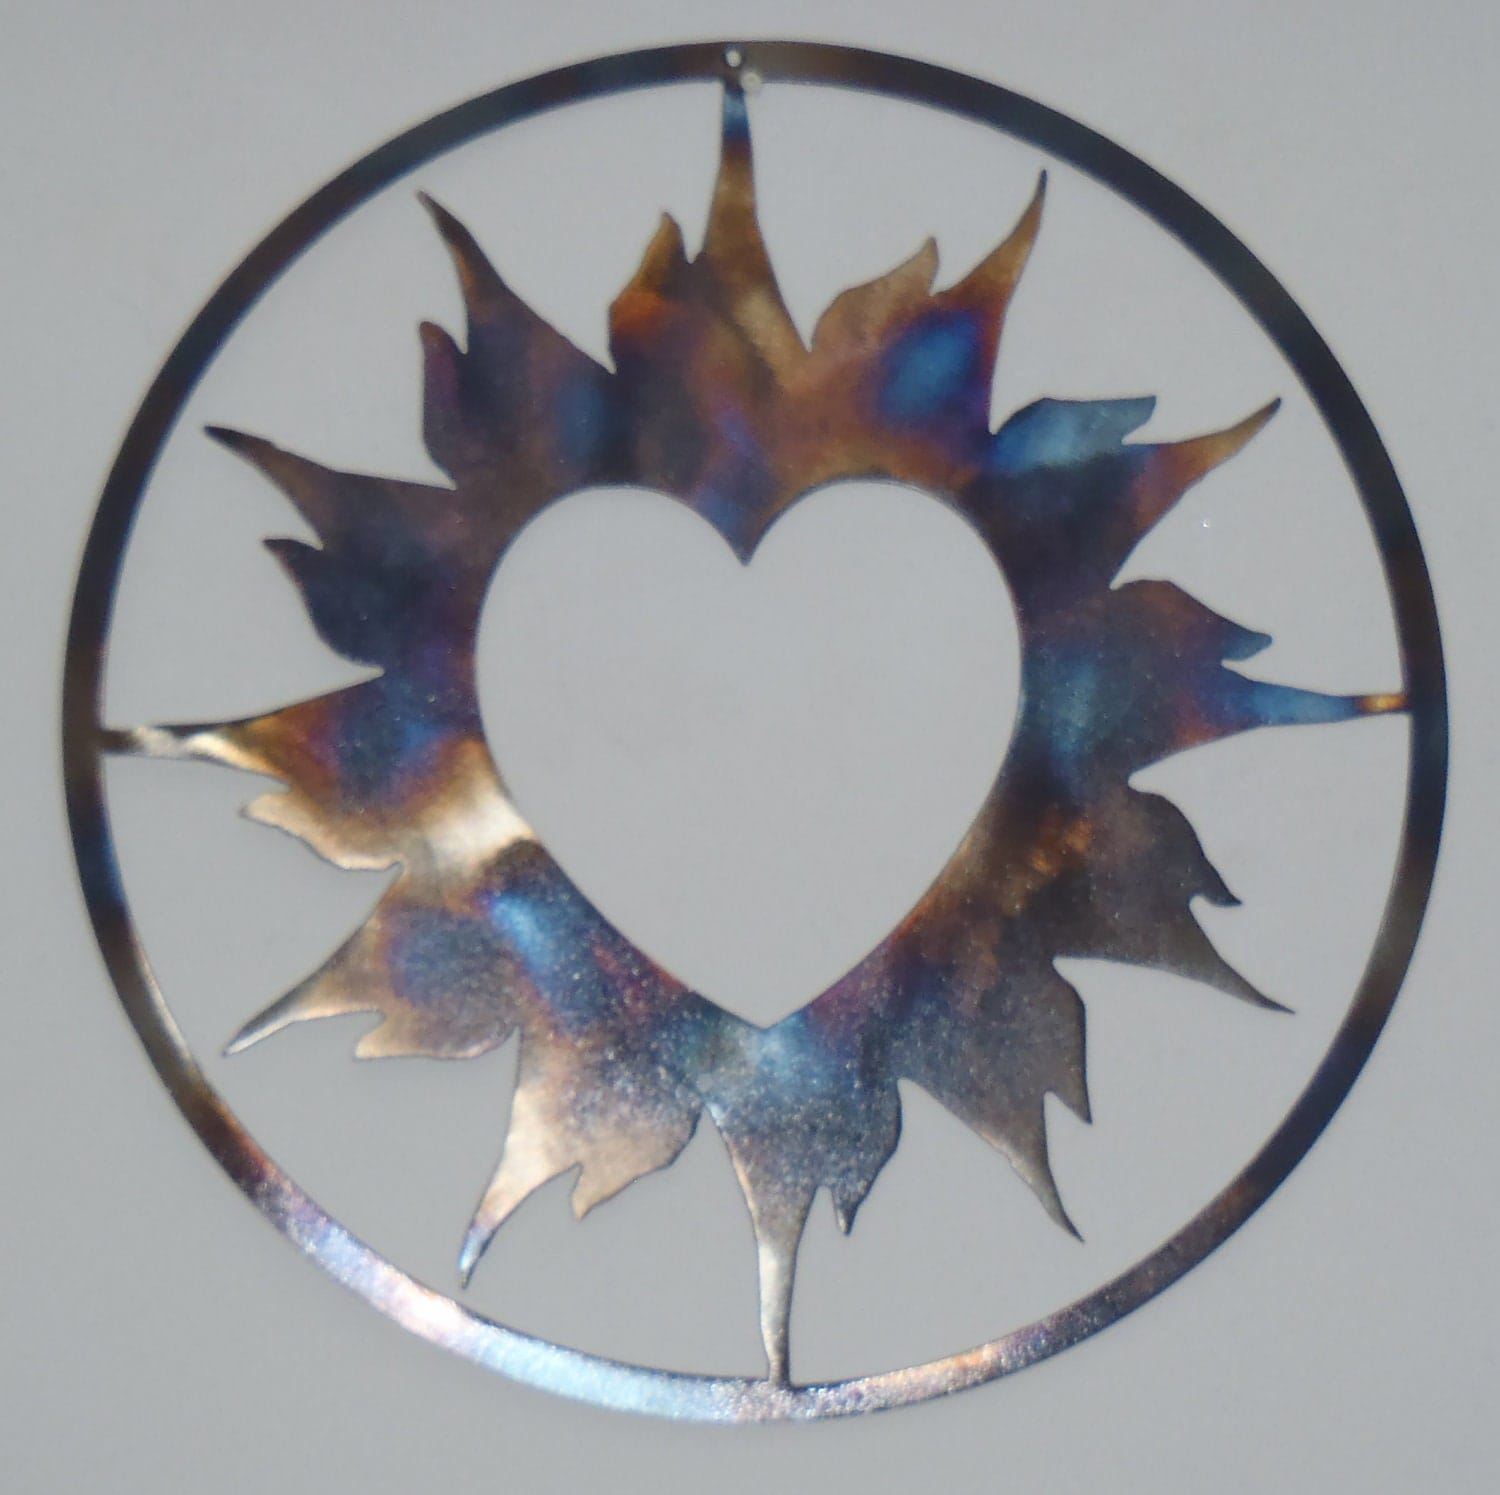 Round Wall Art Decor : Heart and sun metal art round wall decor by tibi on etsy